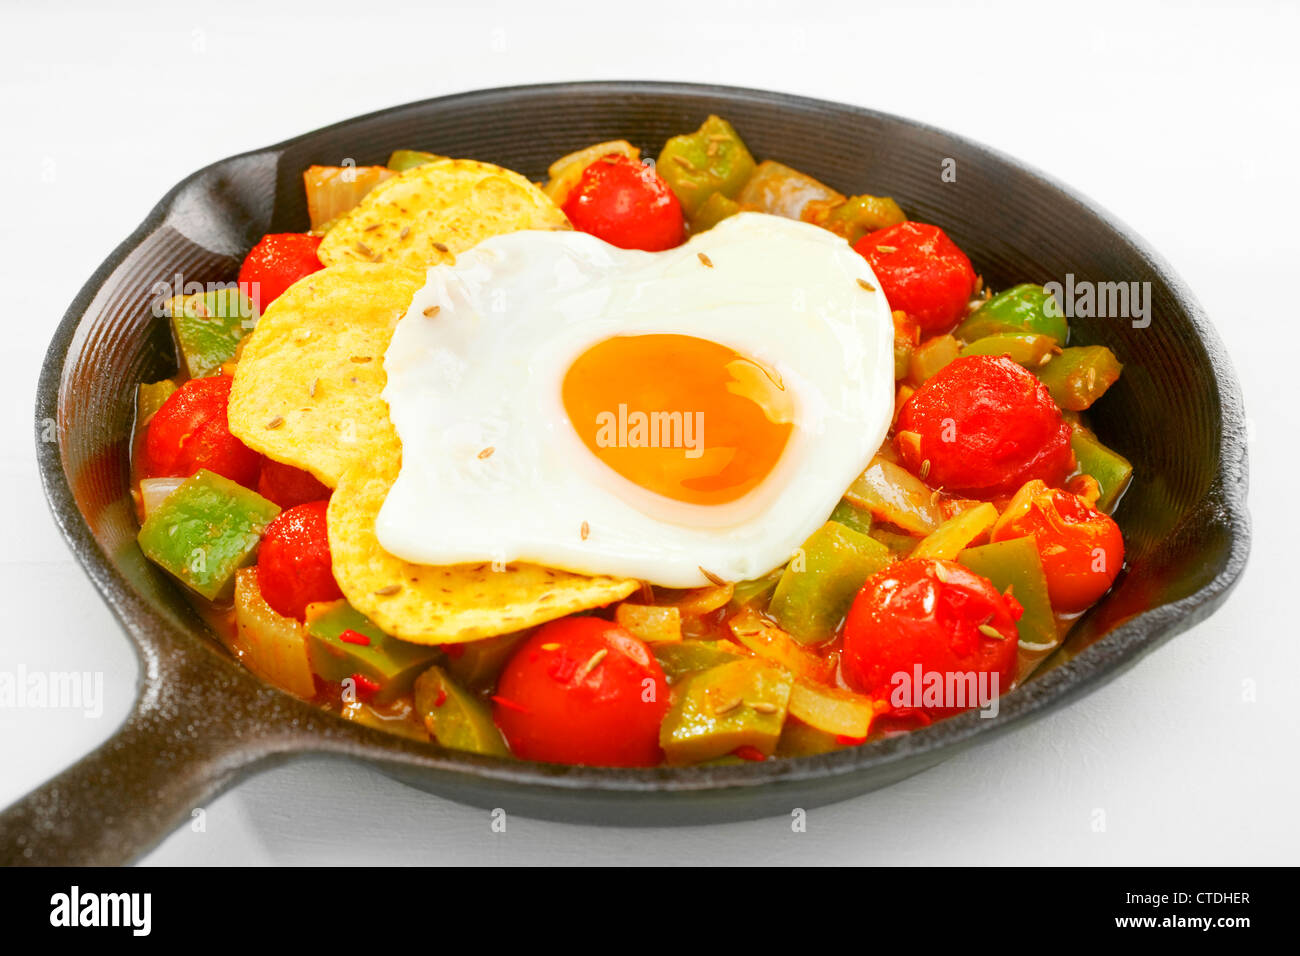 A cast iron skillet containing huevos rancheros, salsa rancheros topped with corn chips and a fried egg. - Stock Image